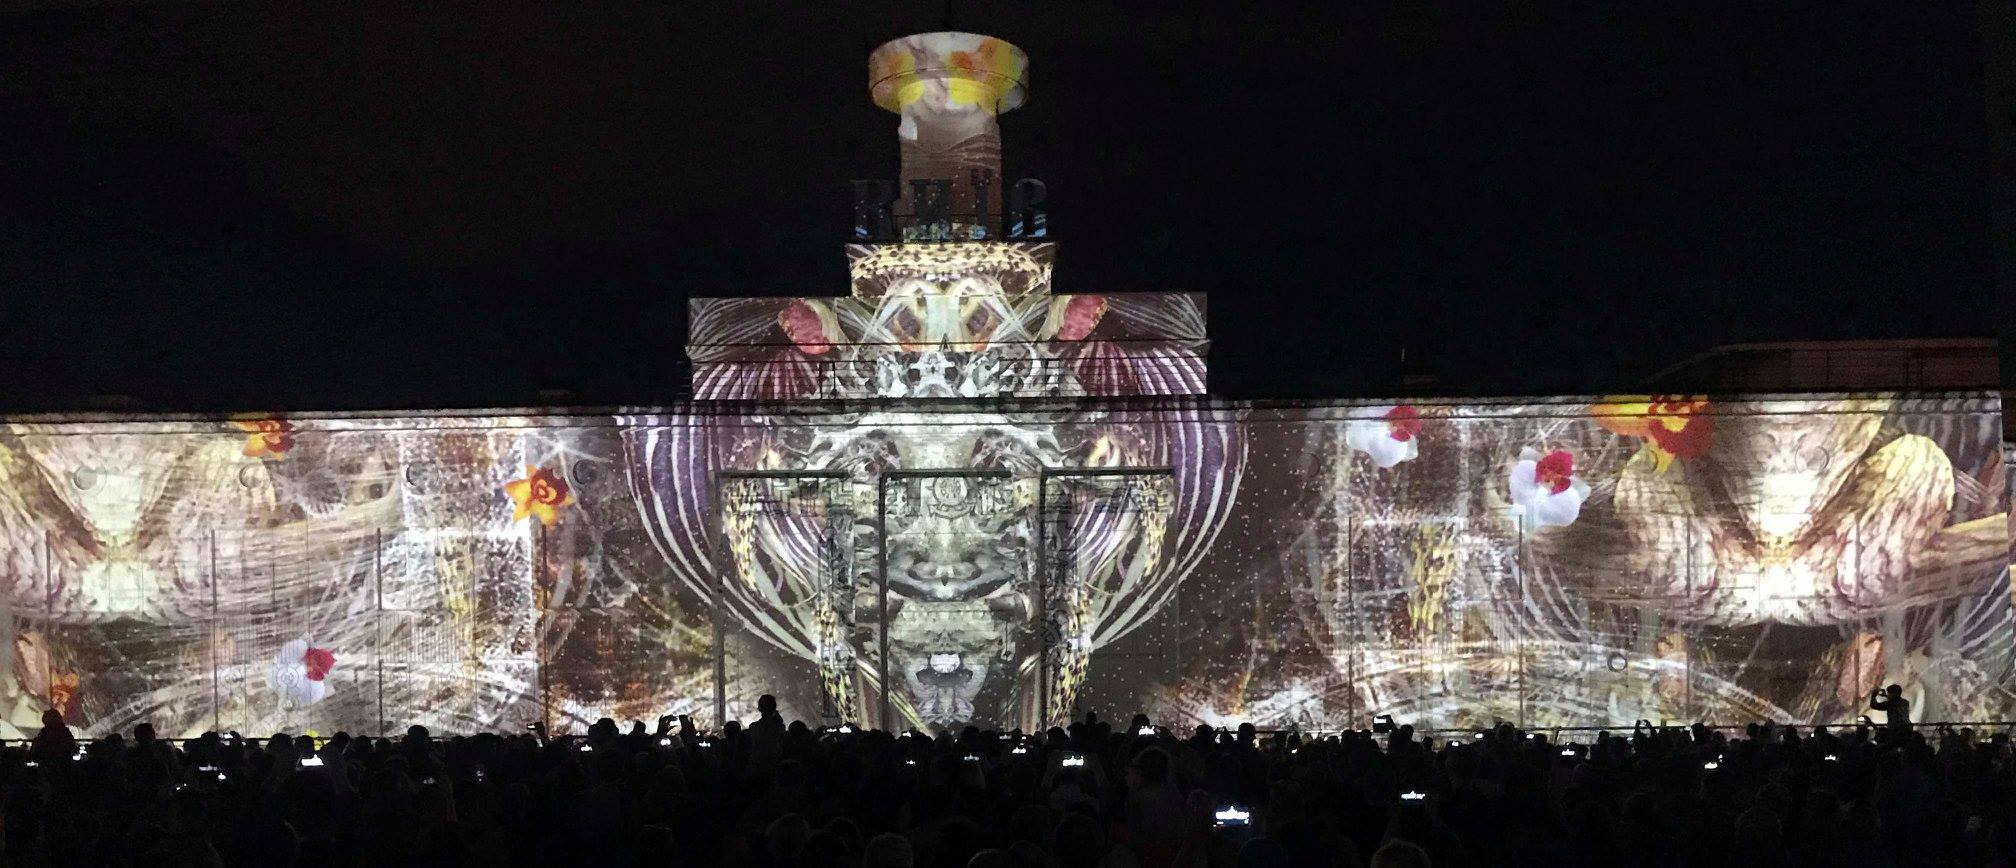 Kyiv Lights Festival 2018 15